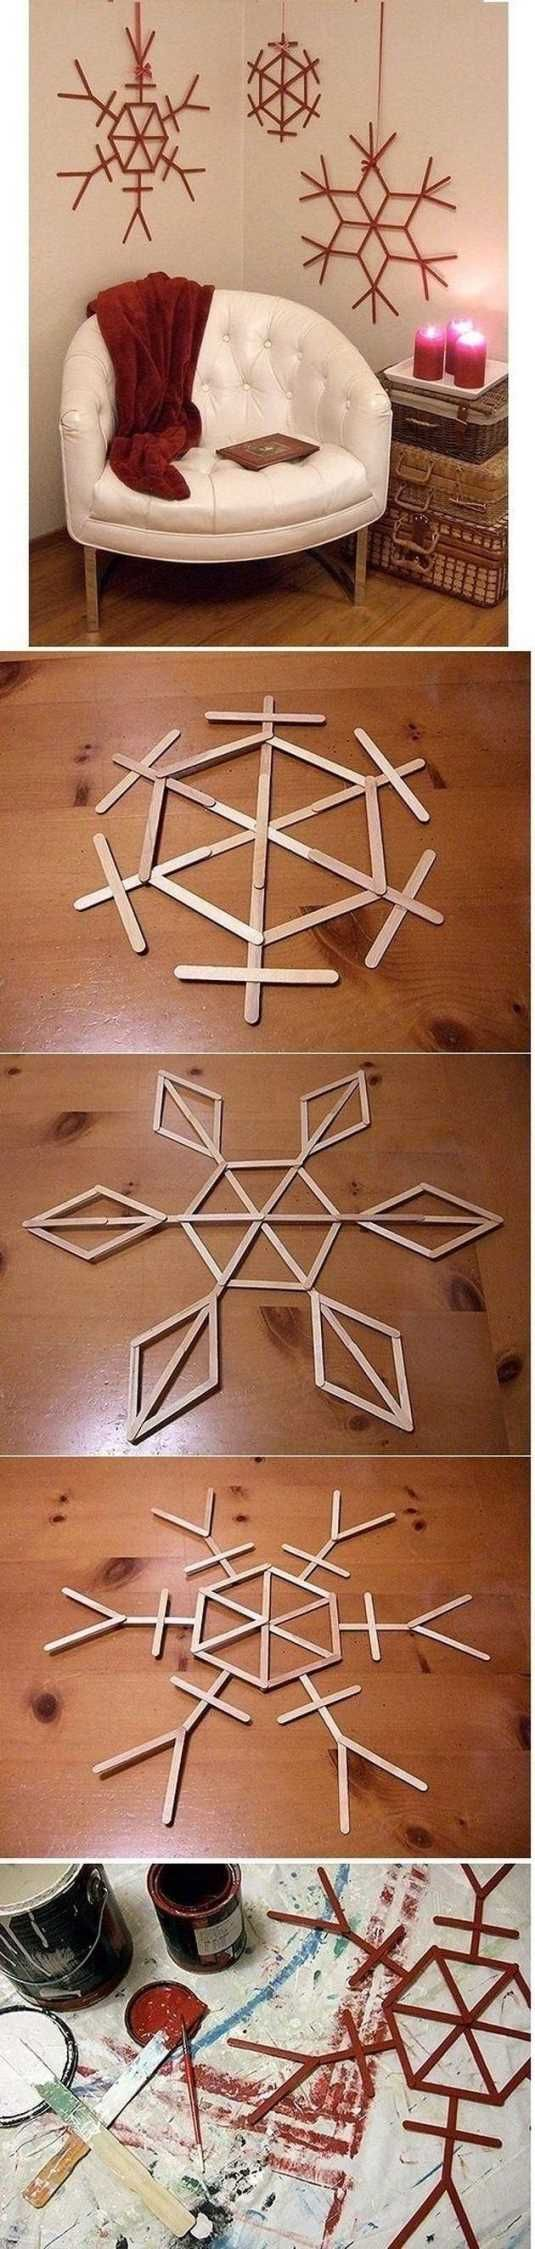 Amazing Christmas Crafts